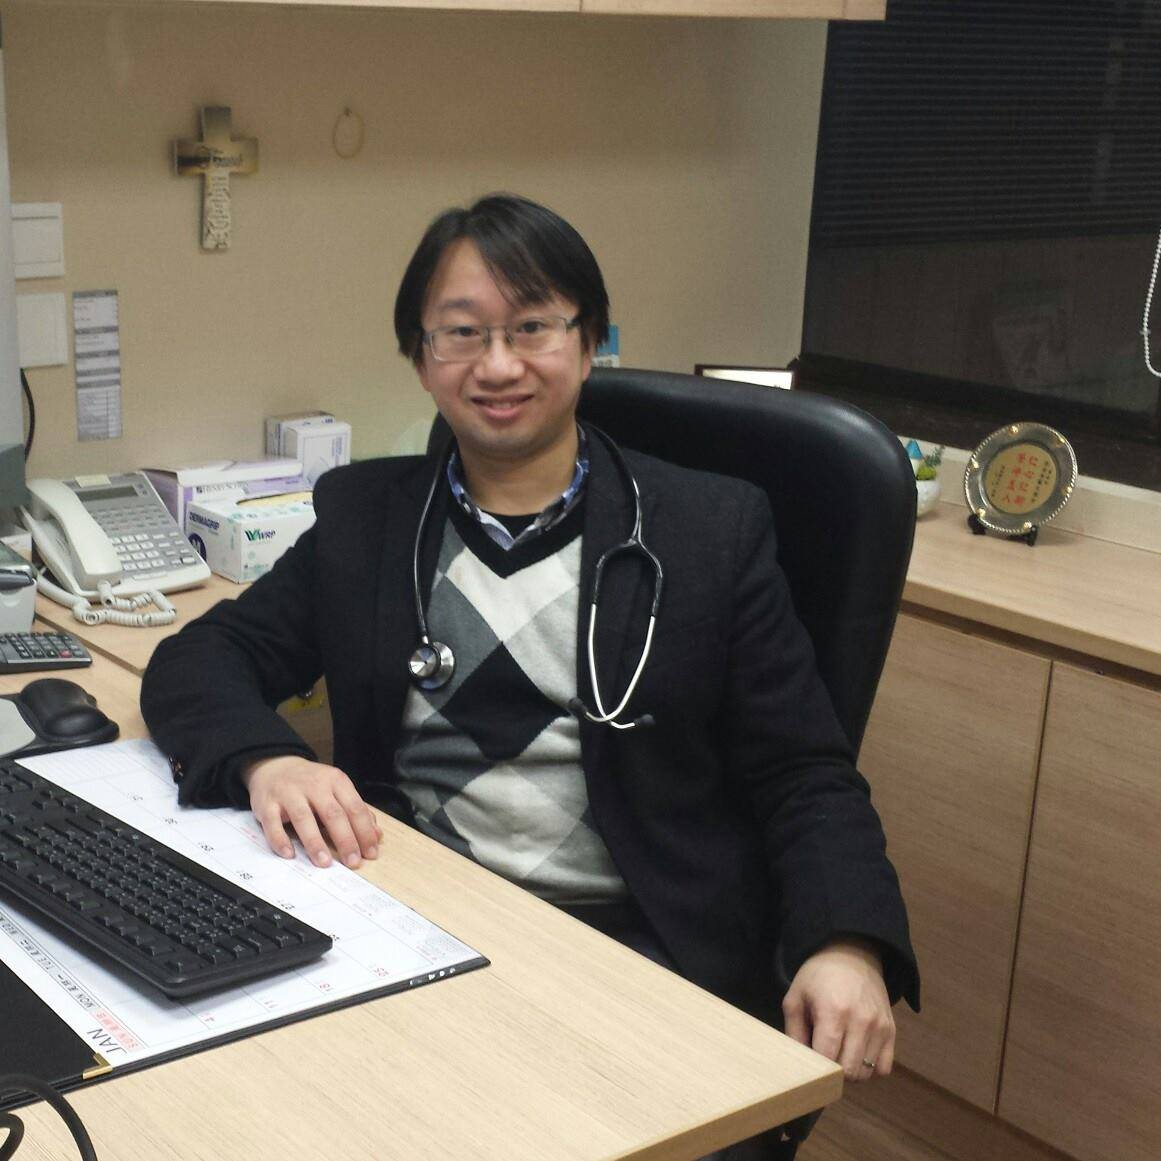 st teresa s hospital in quick online booking for affiliated dr chun yin victor lau